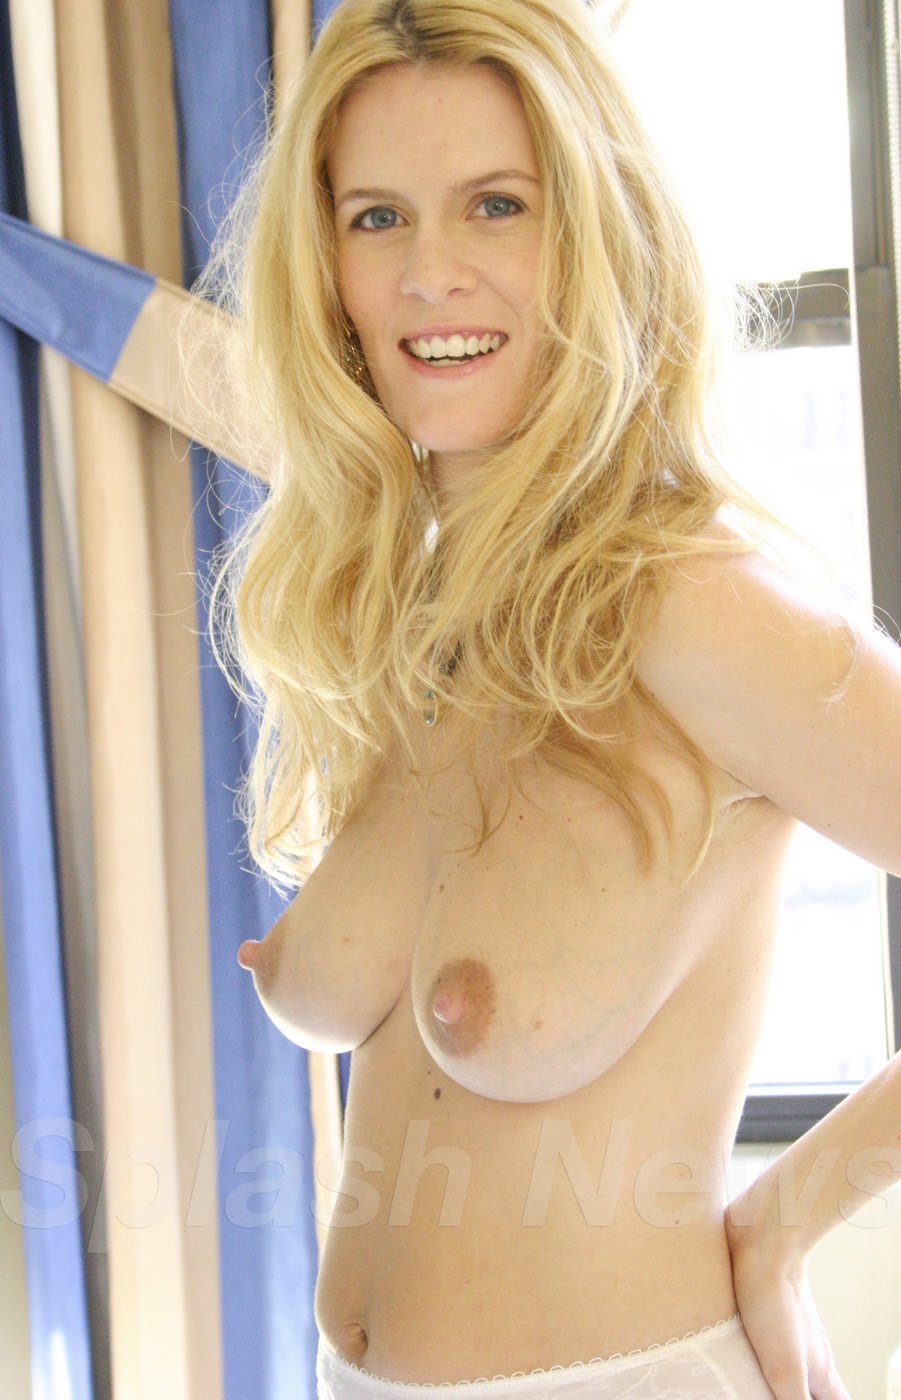 Alex mccord naked uncensored